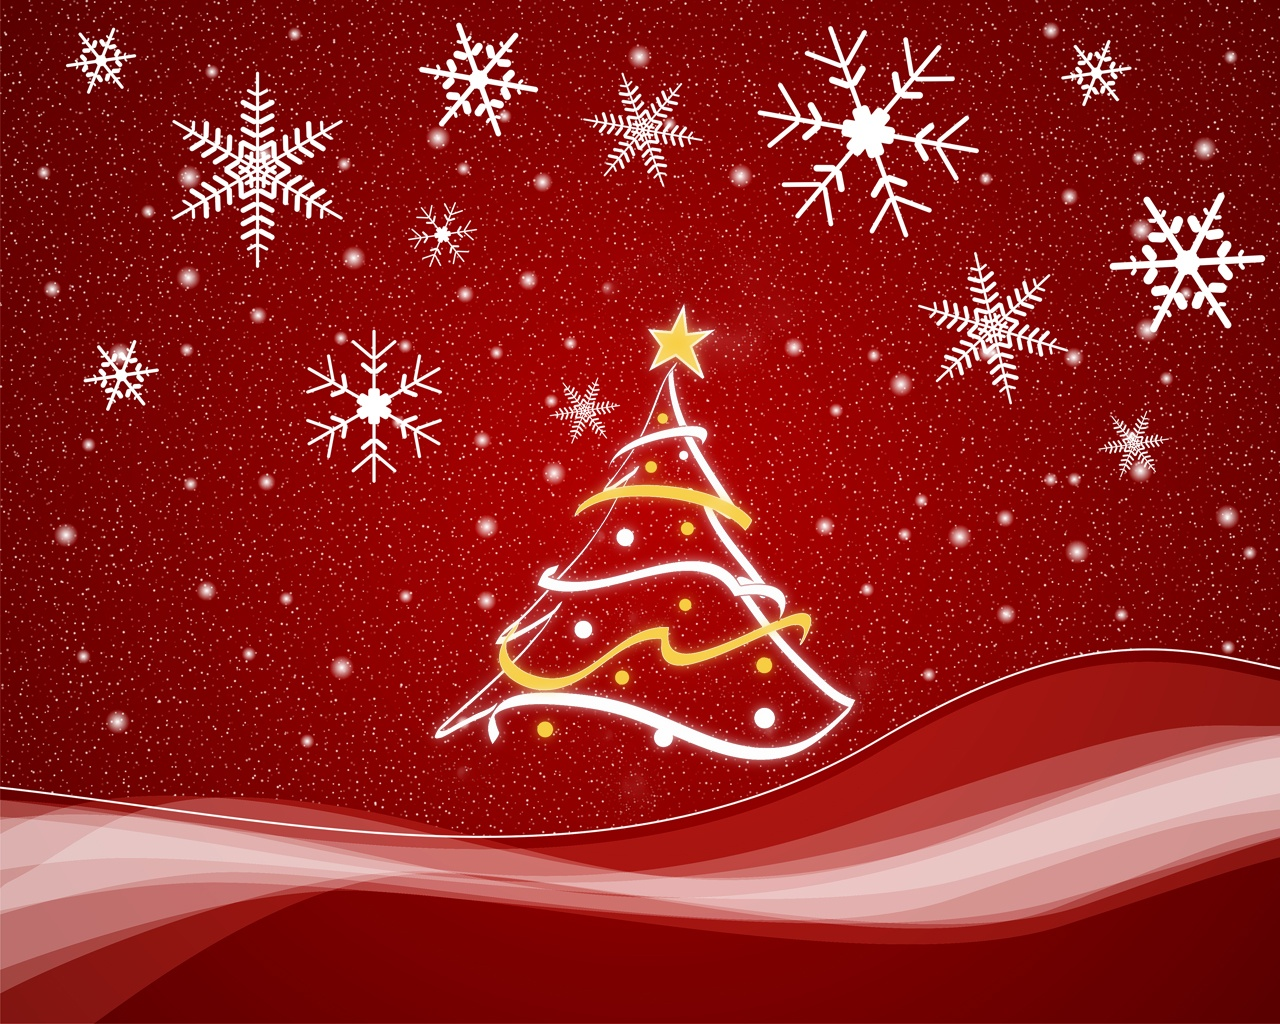 frohe-weihnachten-wallpapers 4520 1280x1024